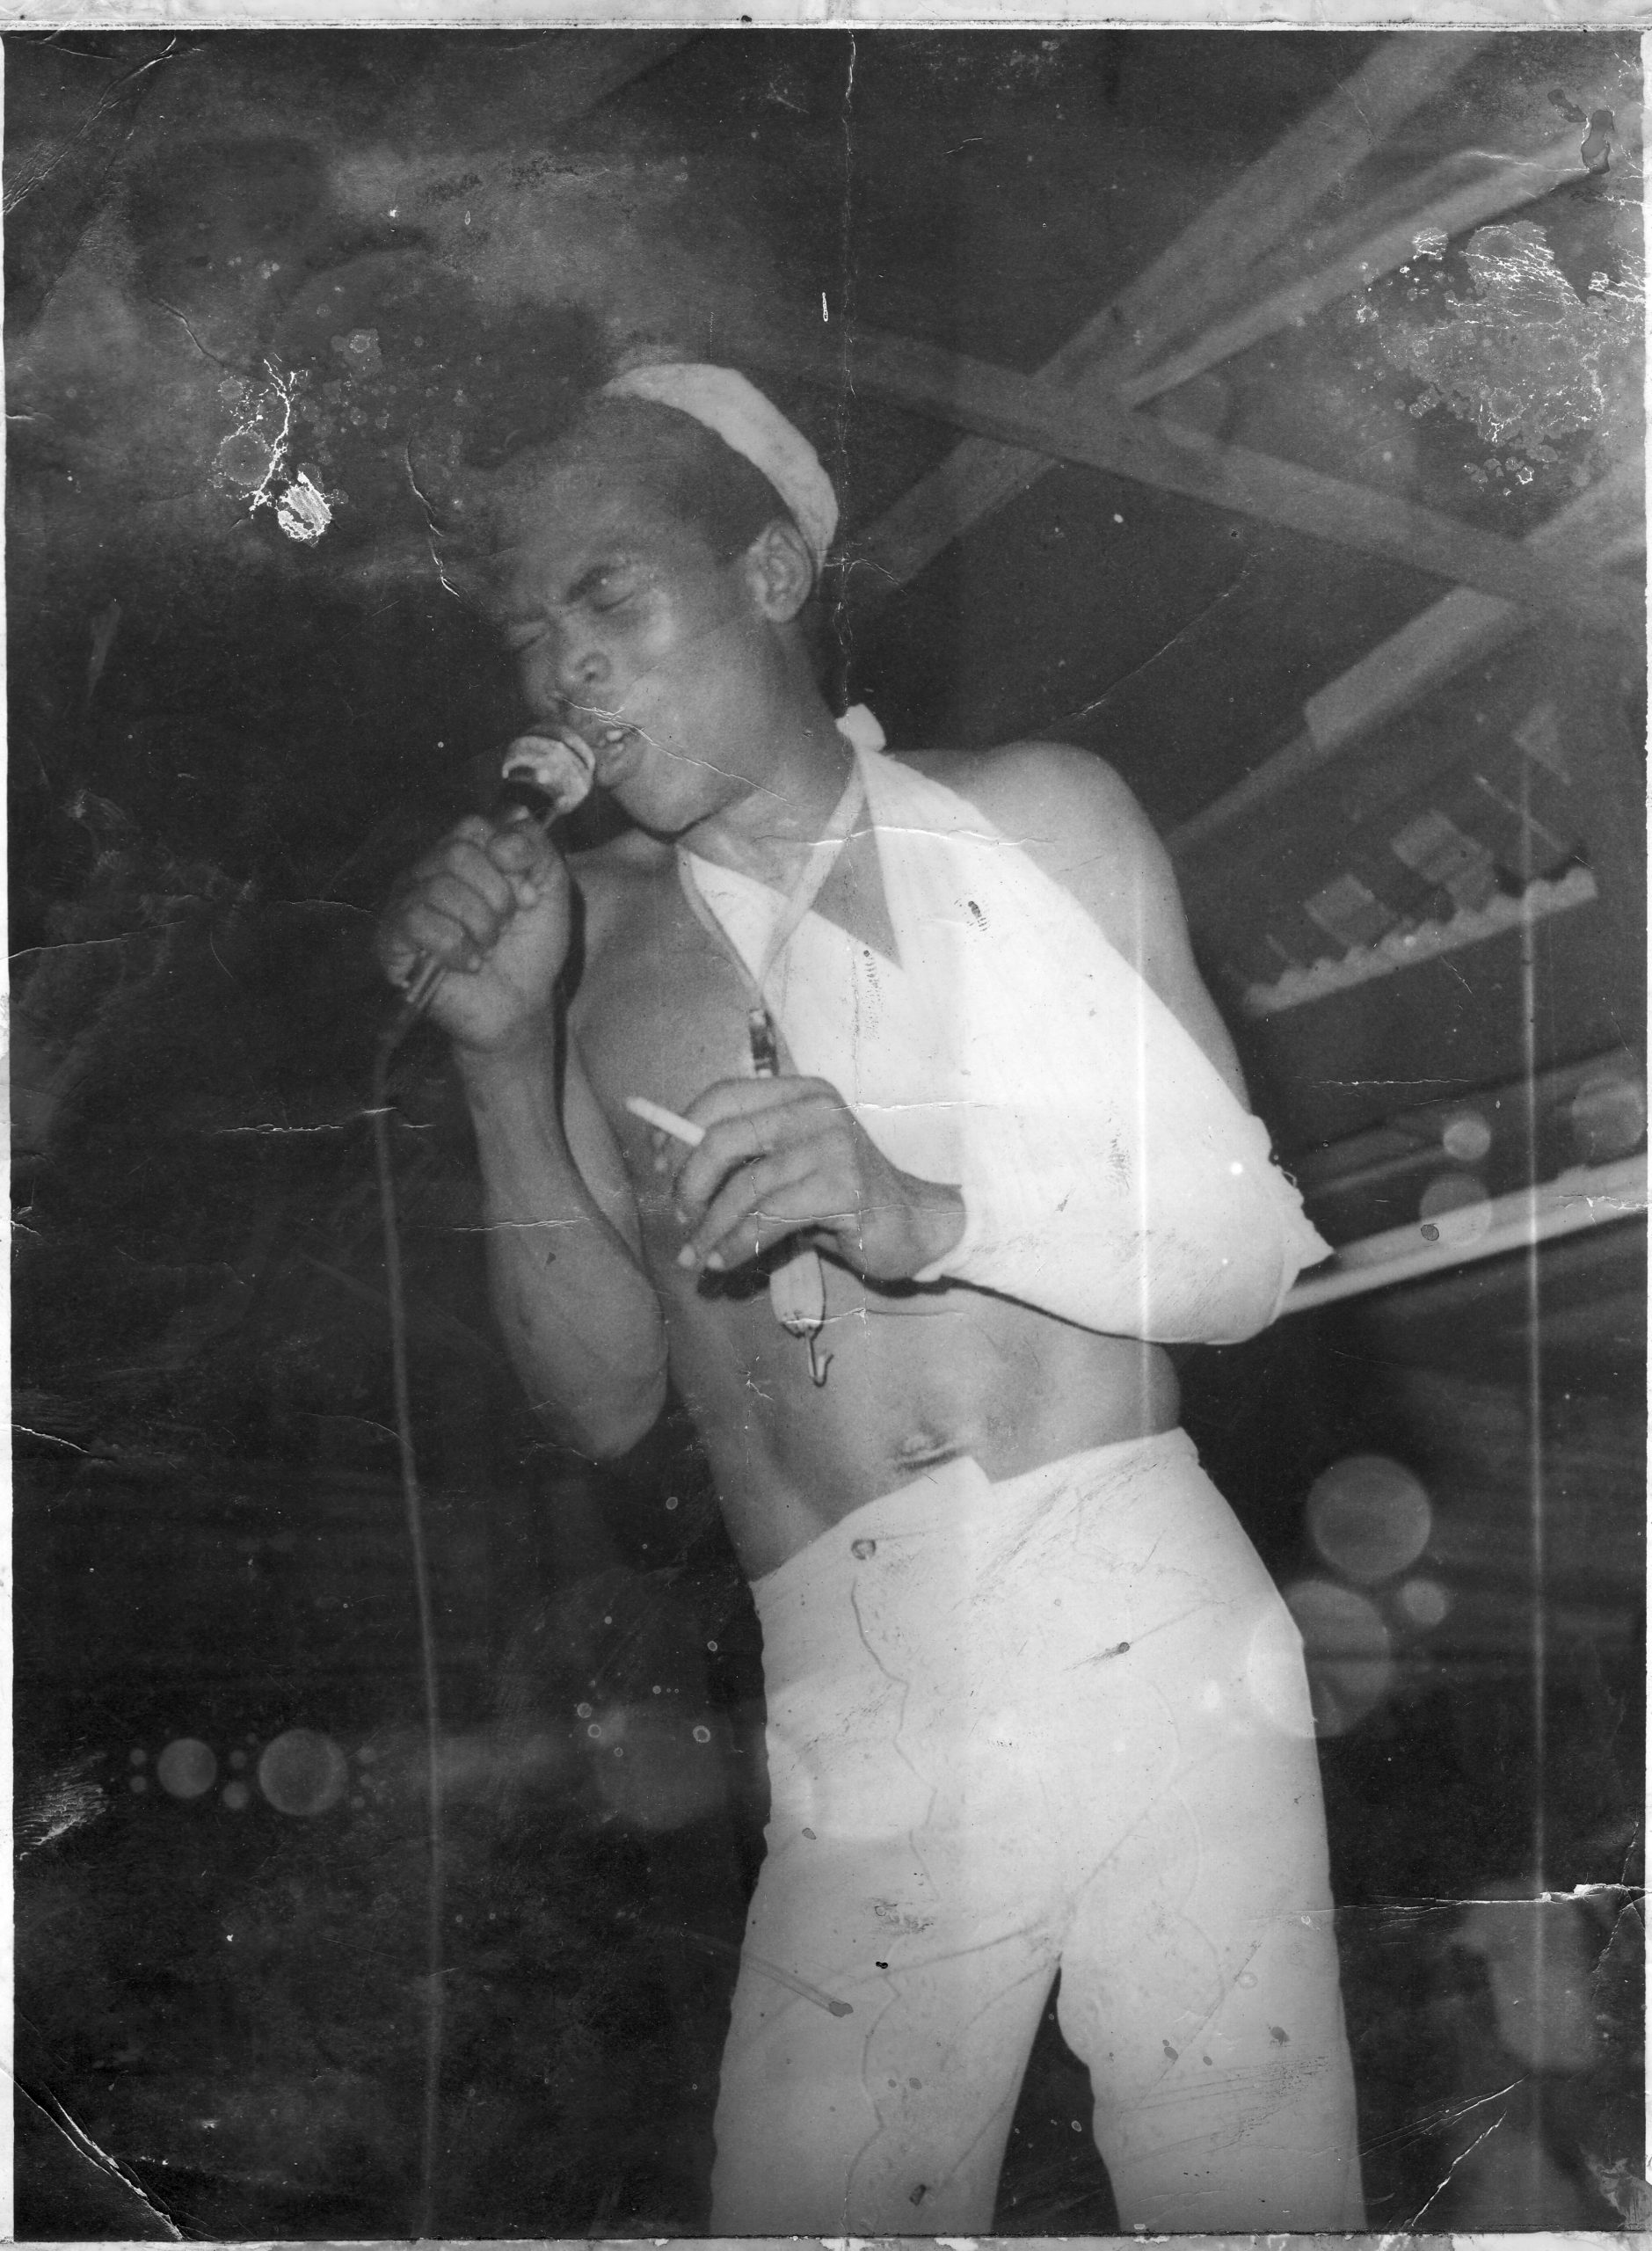 Fela Kuti in bandages after his 1974 court